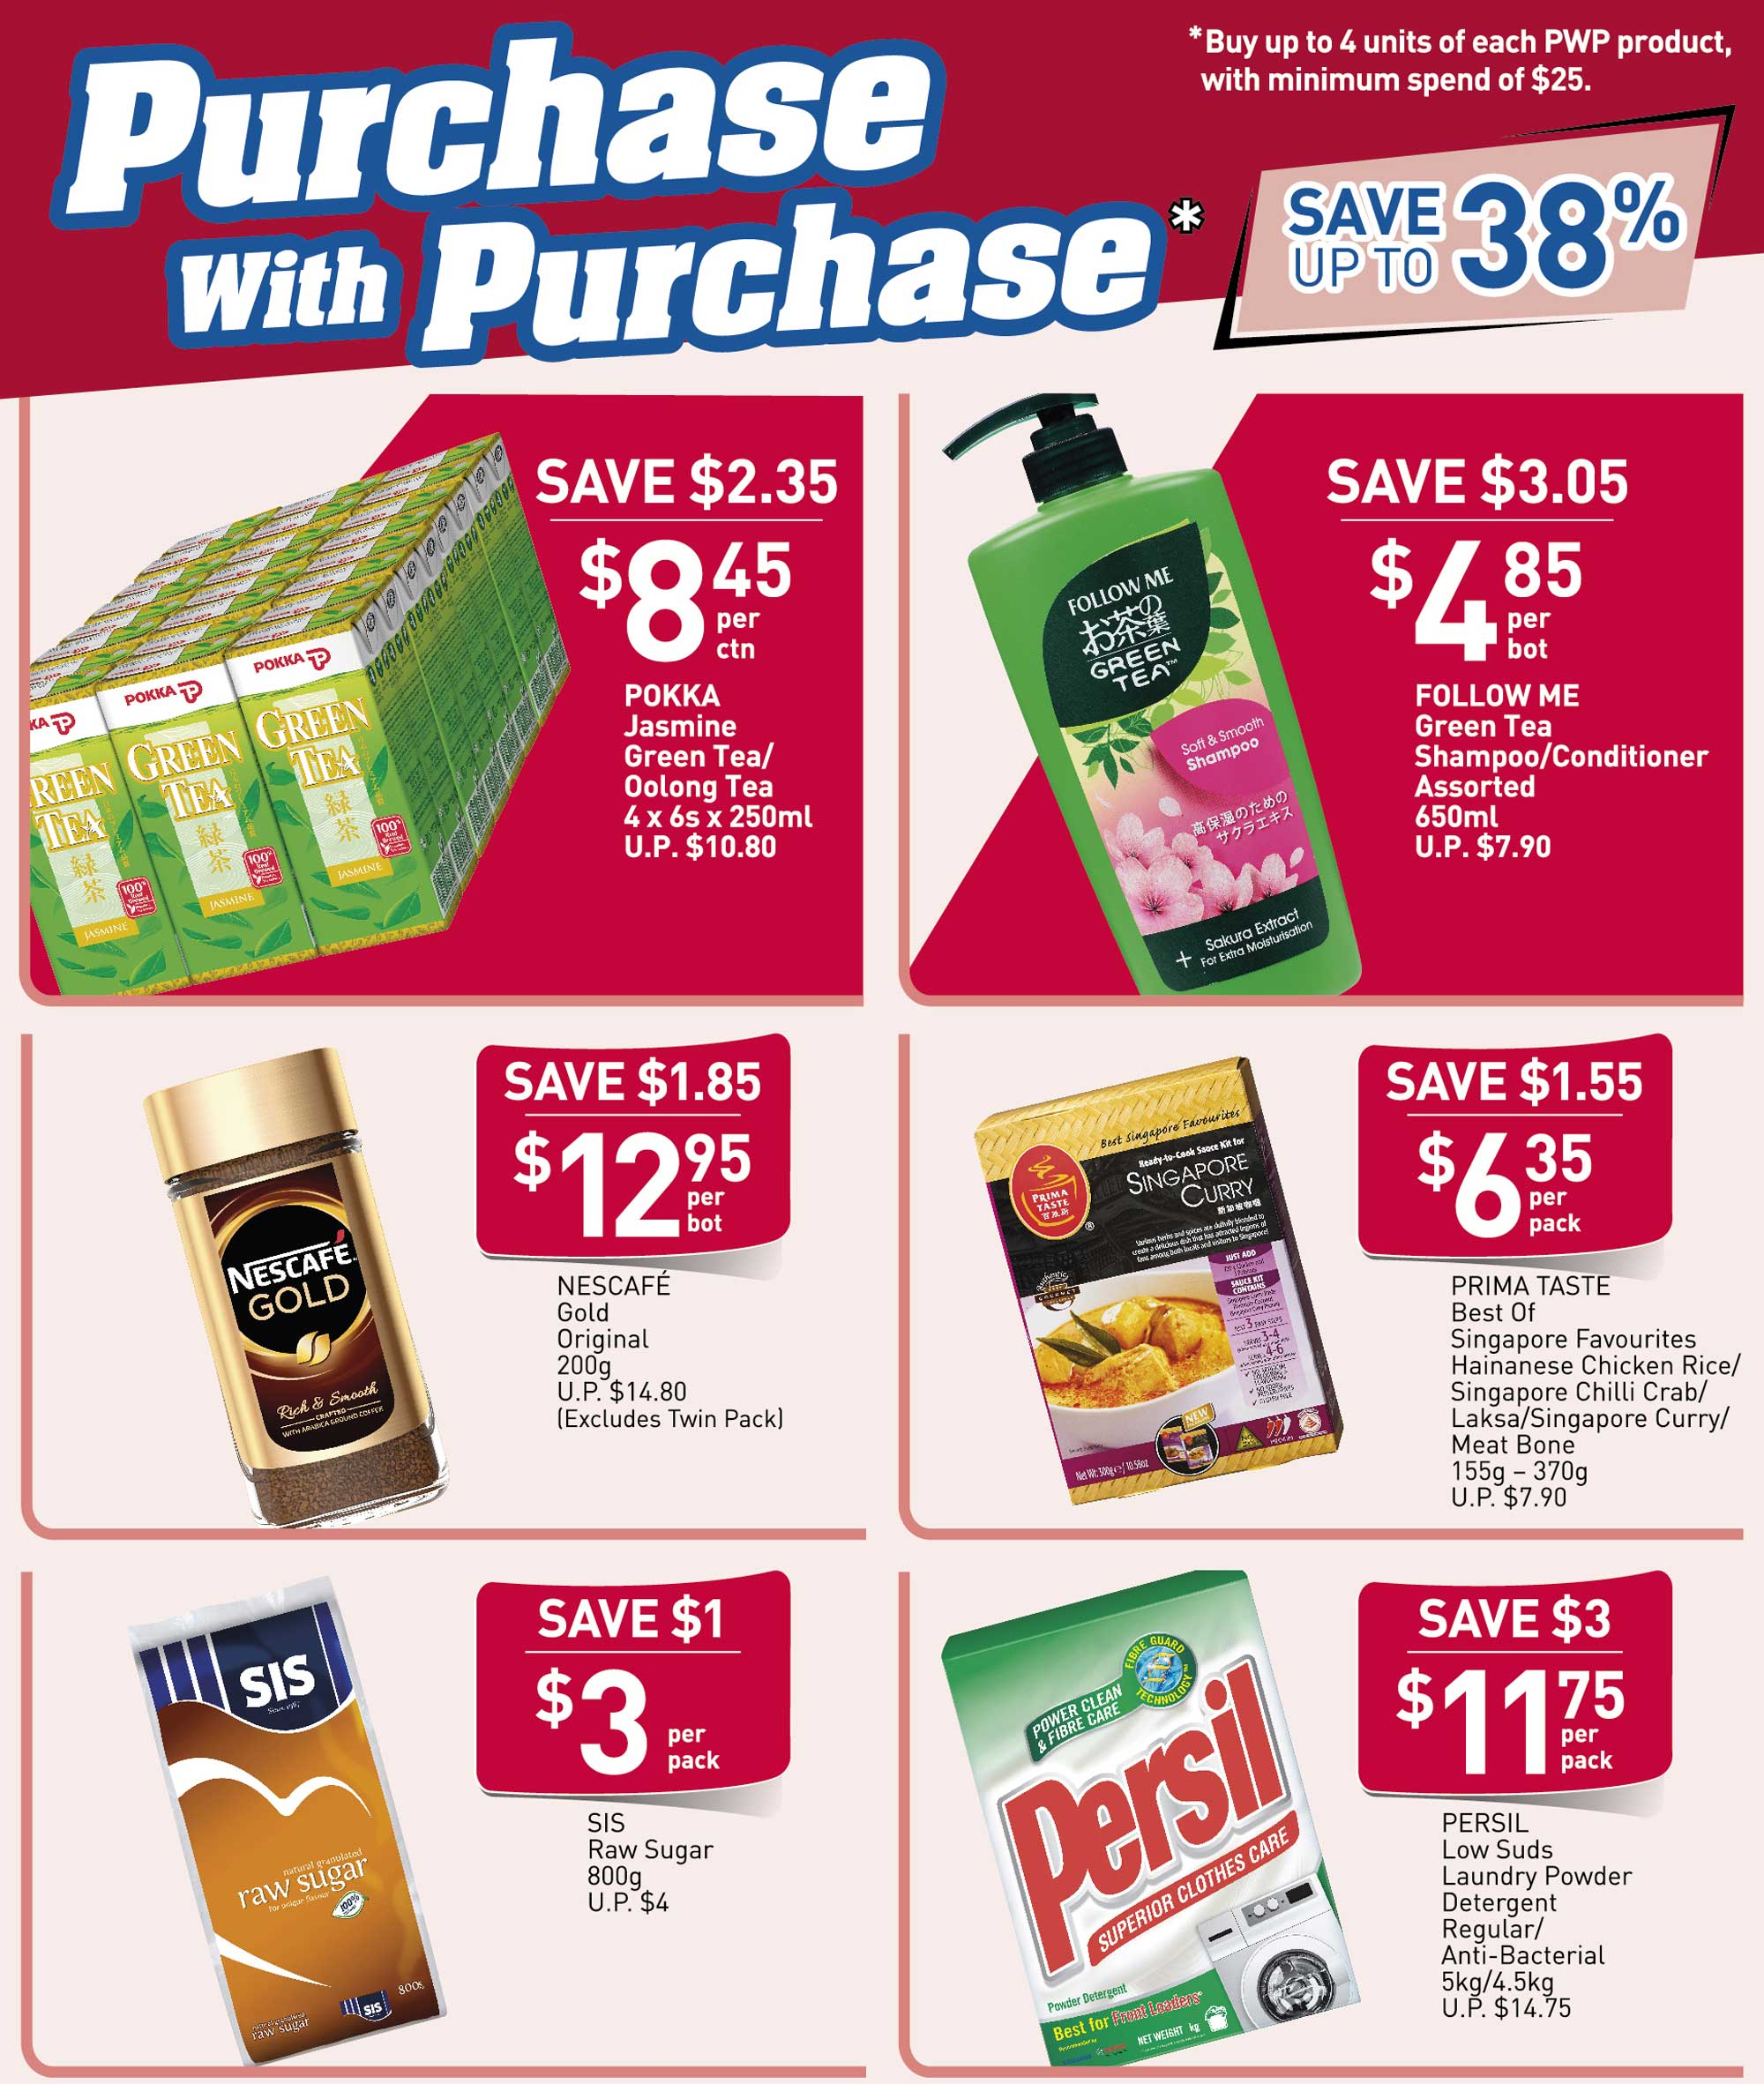 NTUC FairPrice SG Your Weekly Saver Promotion 26 Mar - 1 Apr 2020 | Why Not Deals 1 & Promotions